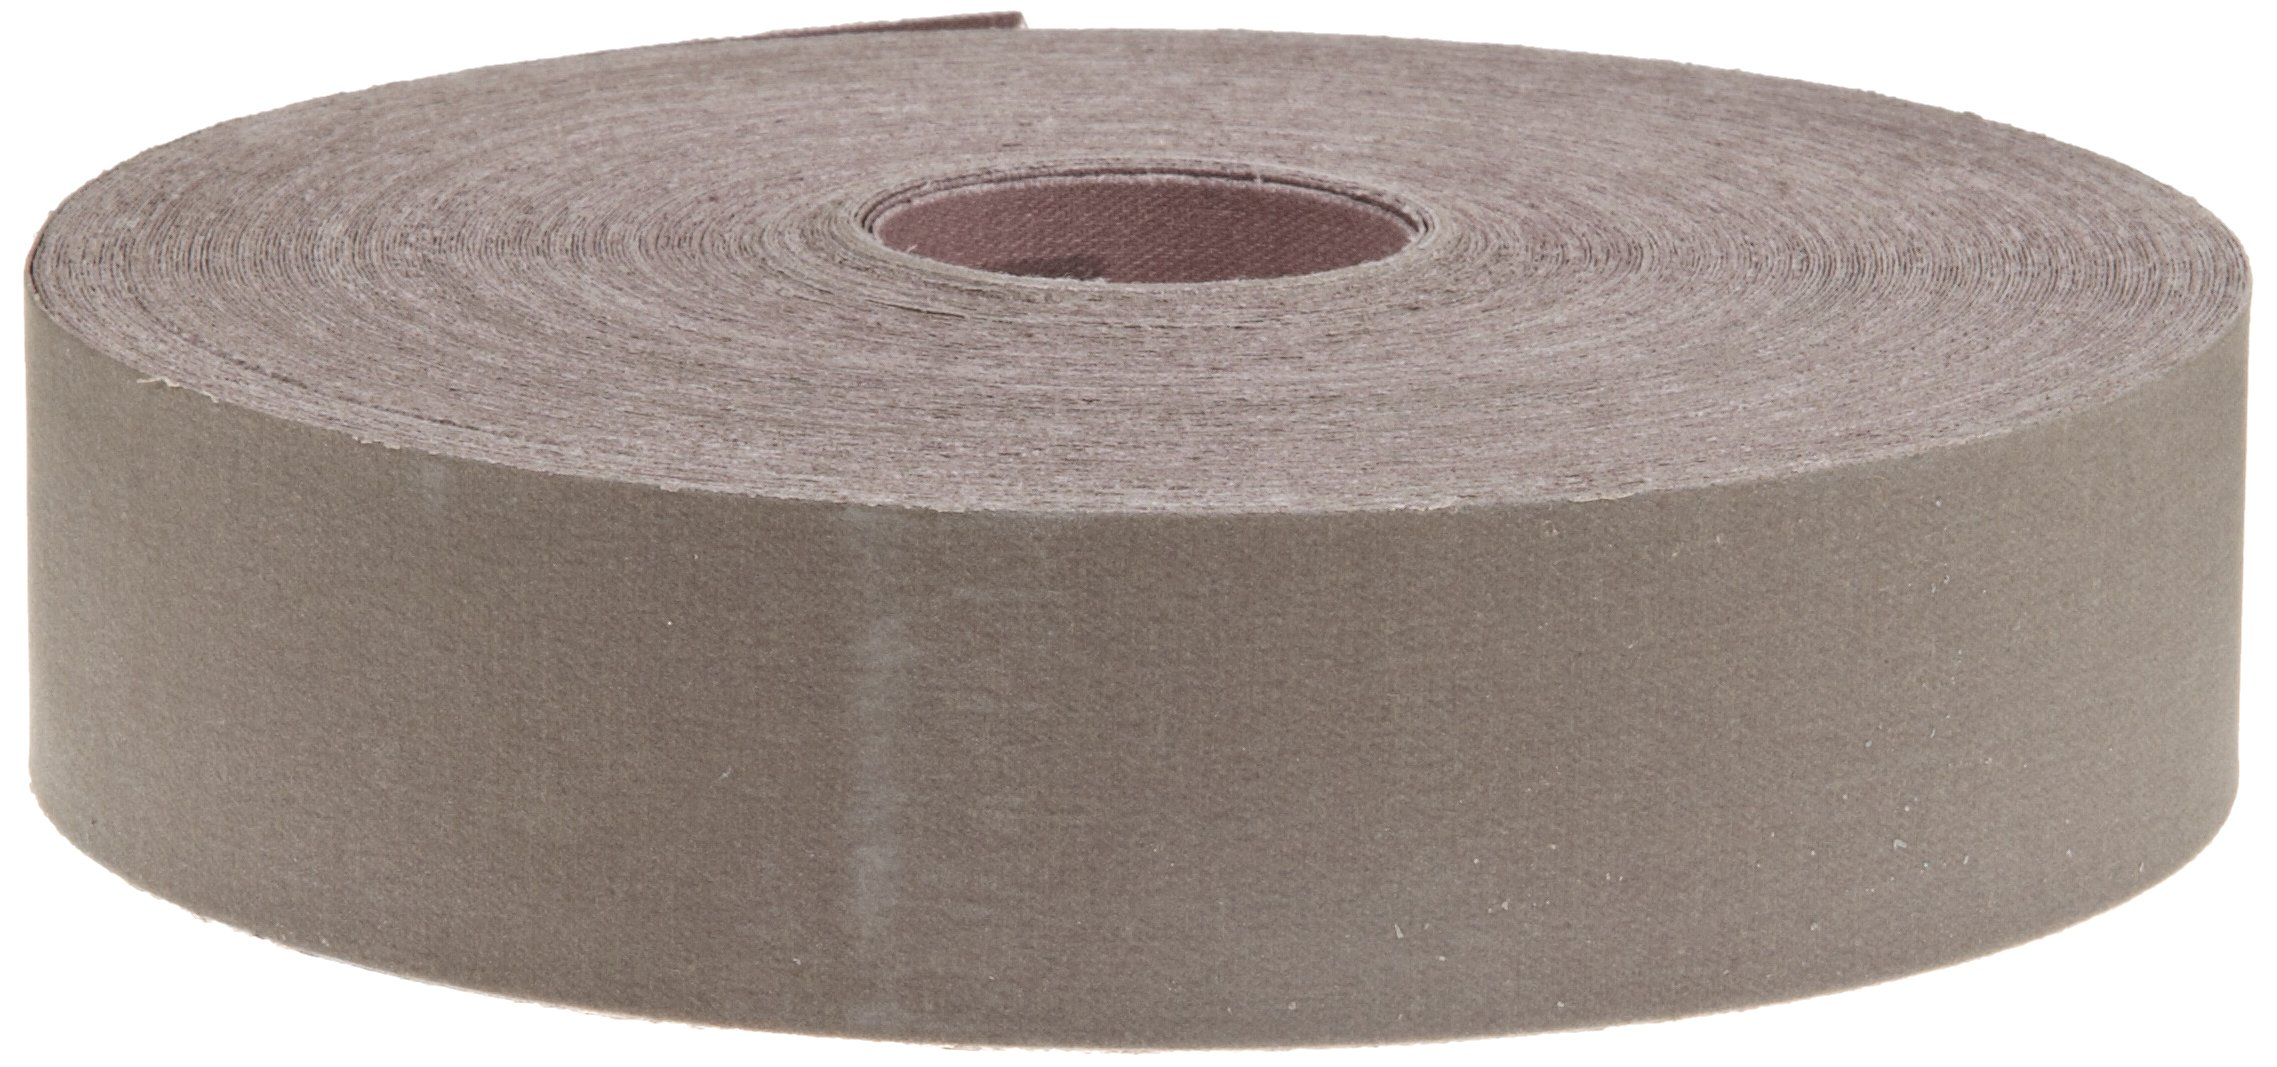 3M Utility Cloth Roll 211K, Aluminum Oxide, 1-1/2'' Width x 50yd Length, 400 Grit (Pack of 1)